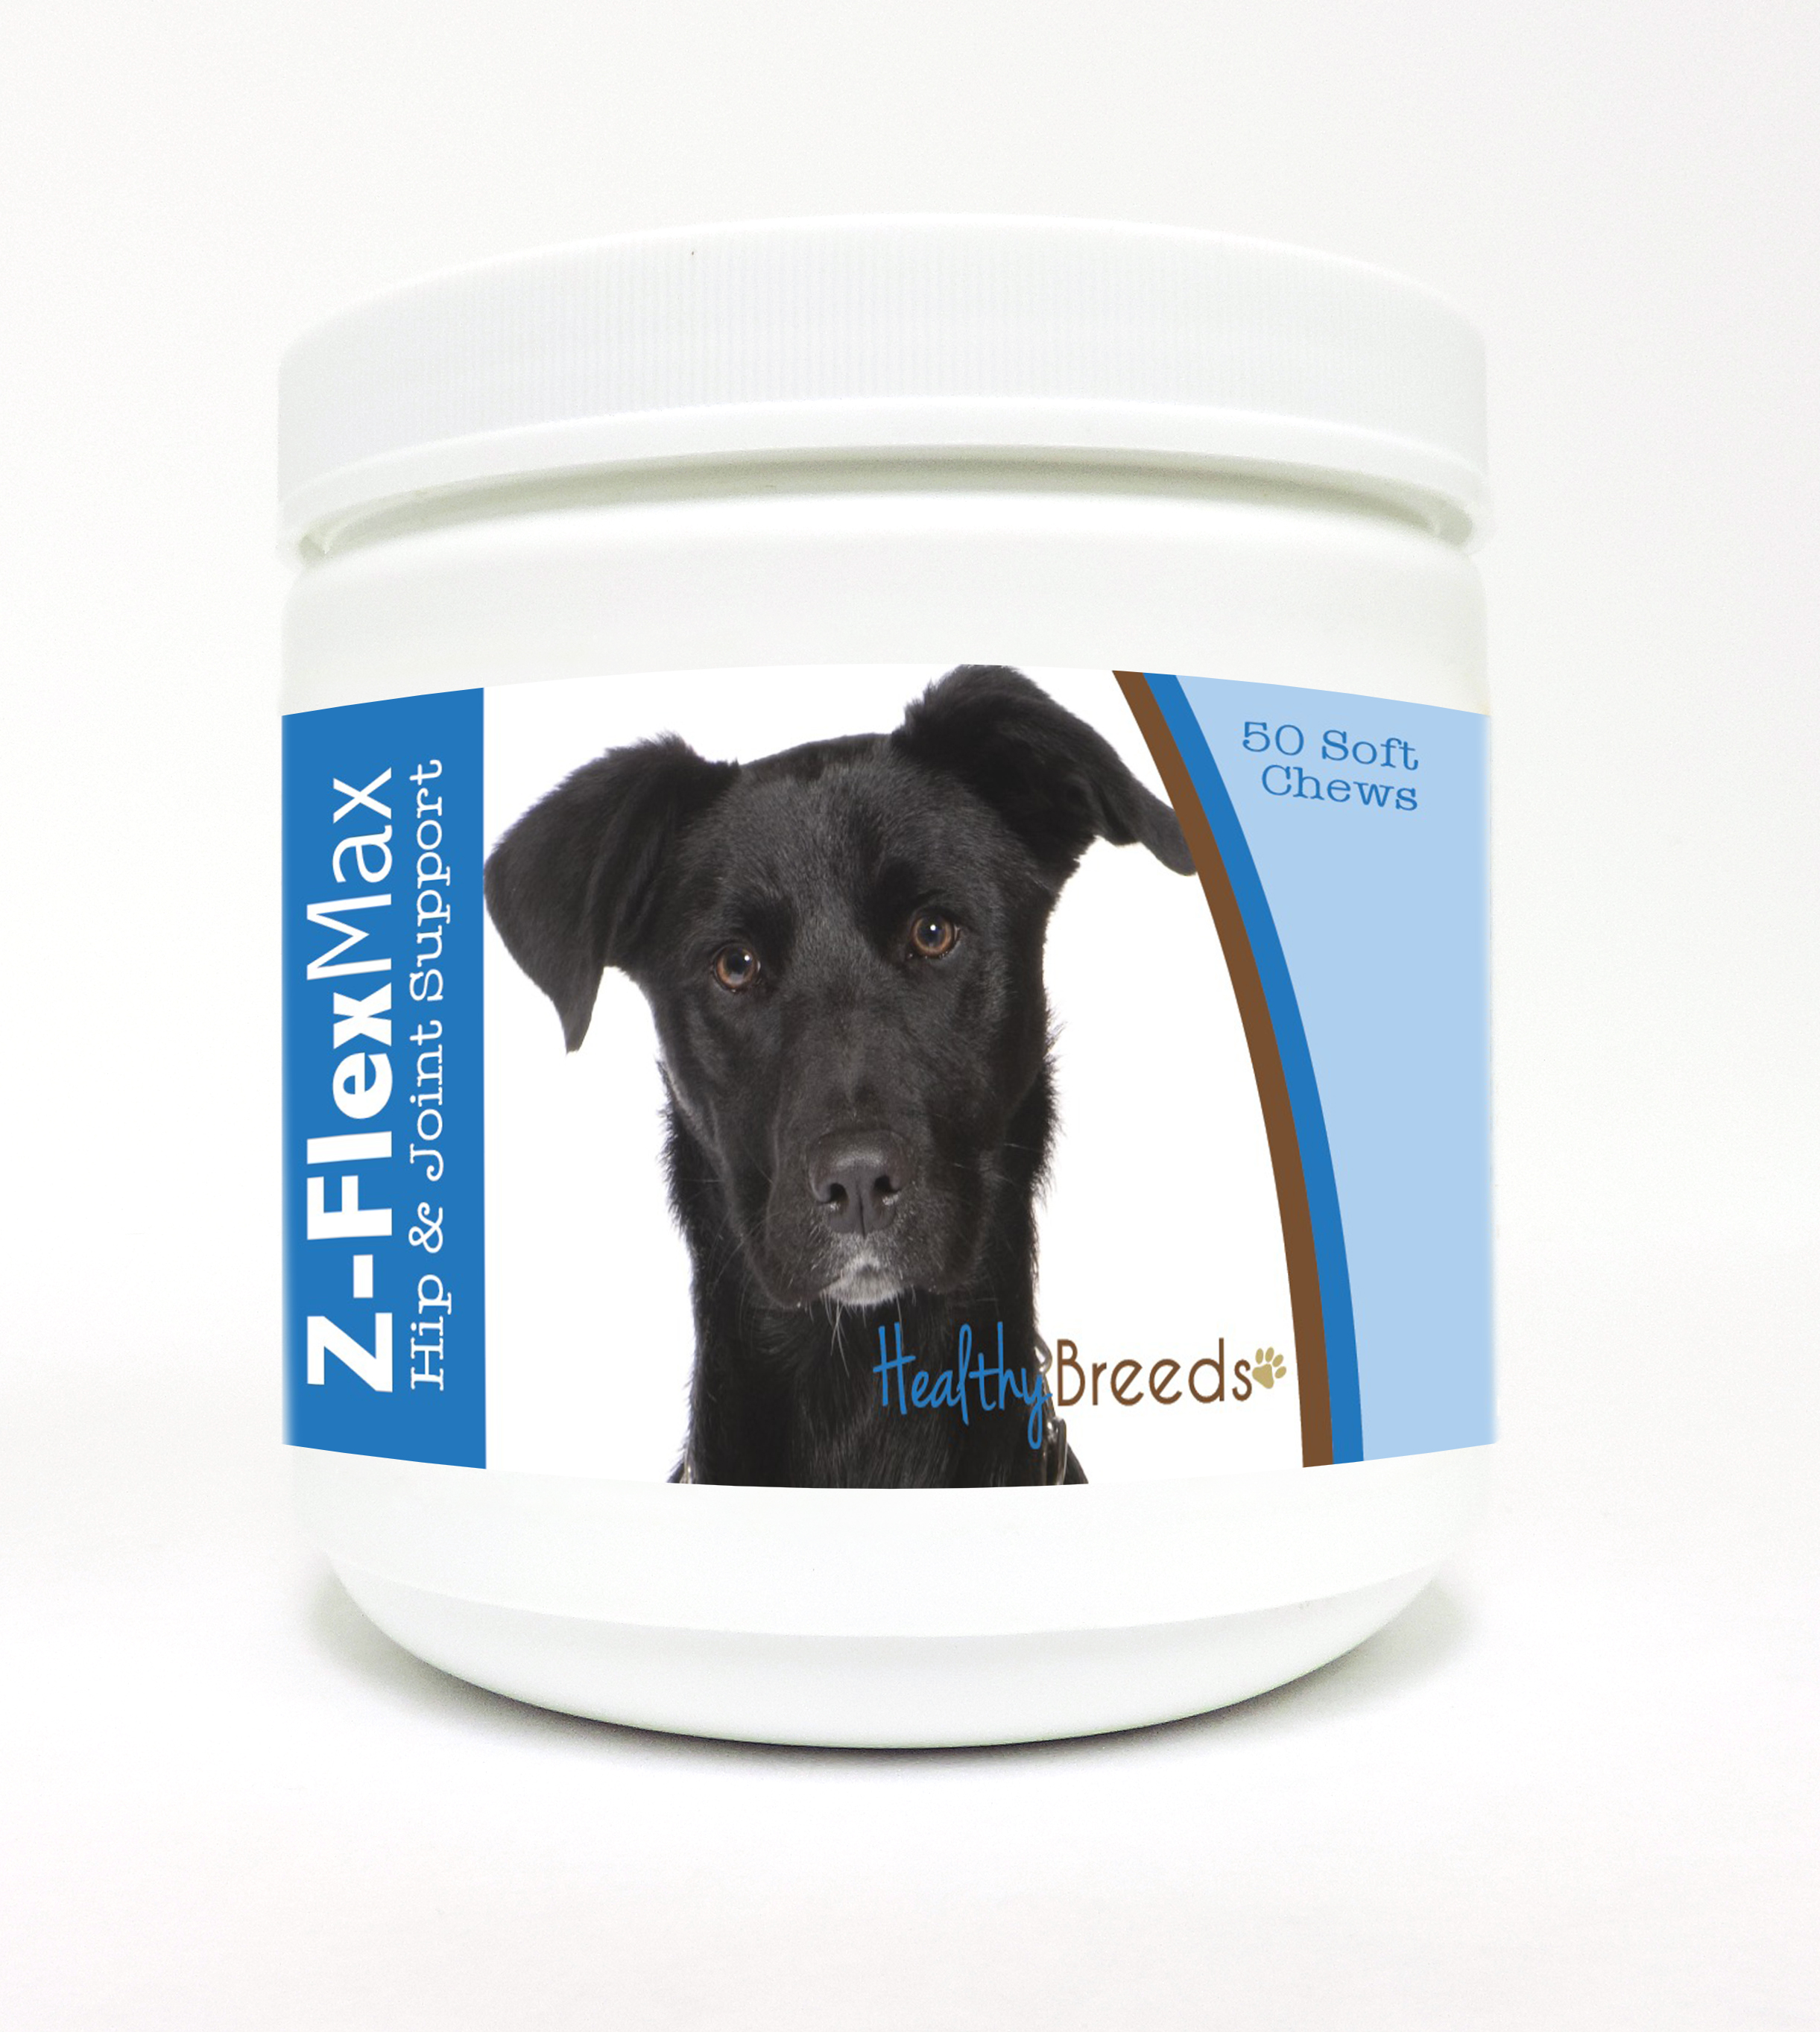 Healthy Breeds Mutt Z-Flex Max Dog Hip & Joint Support Soft Chews 50 Count